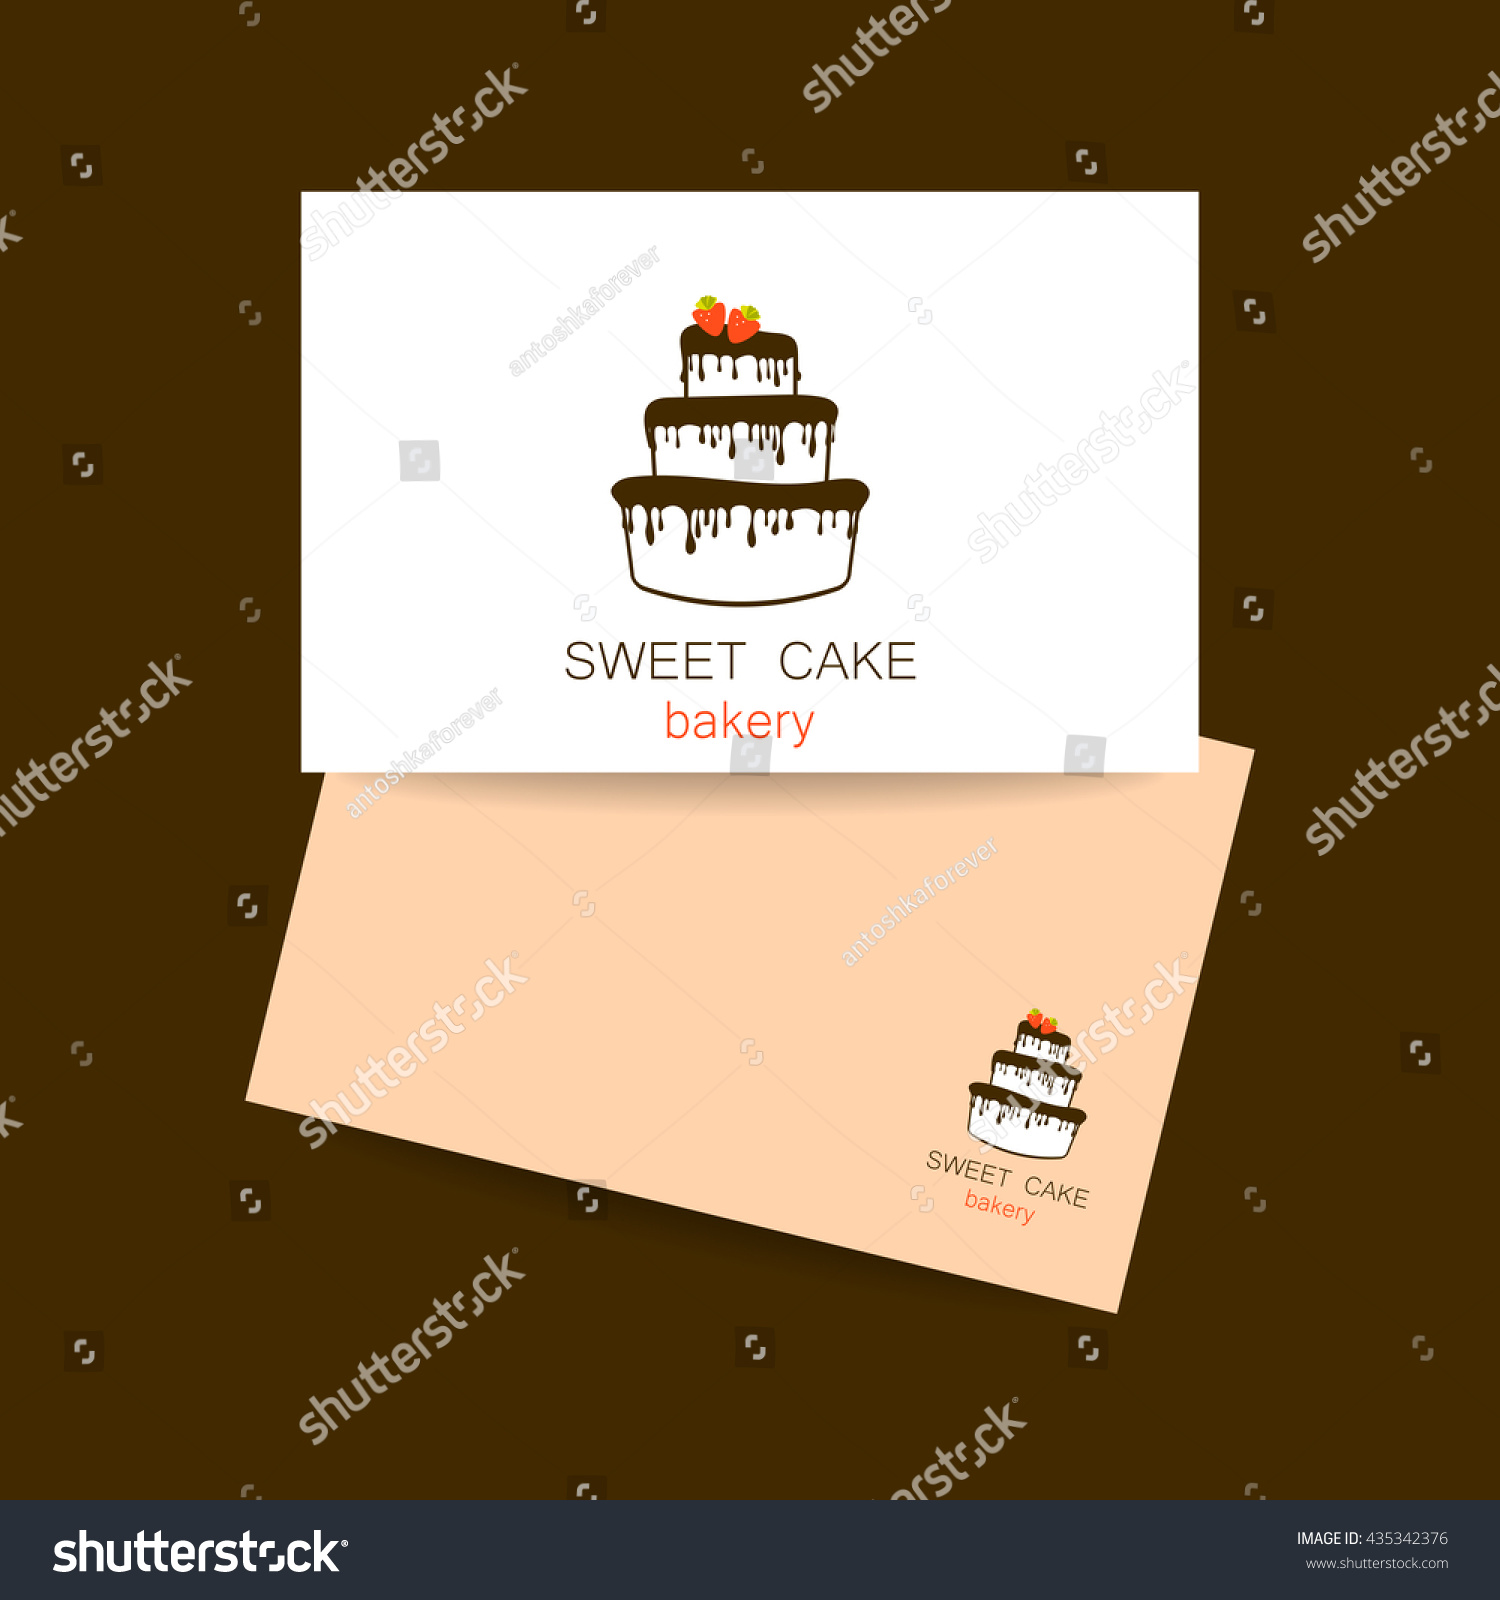 Business Card Design Template Sweet Cake Stock Vector